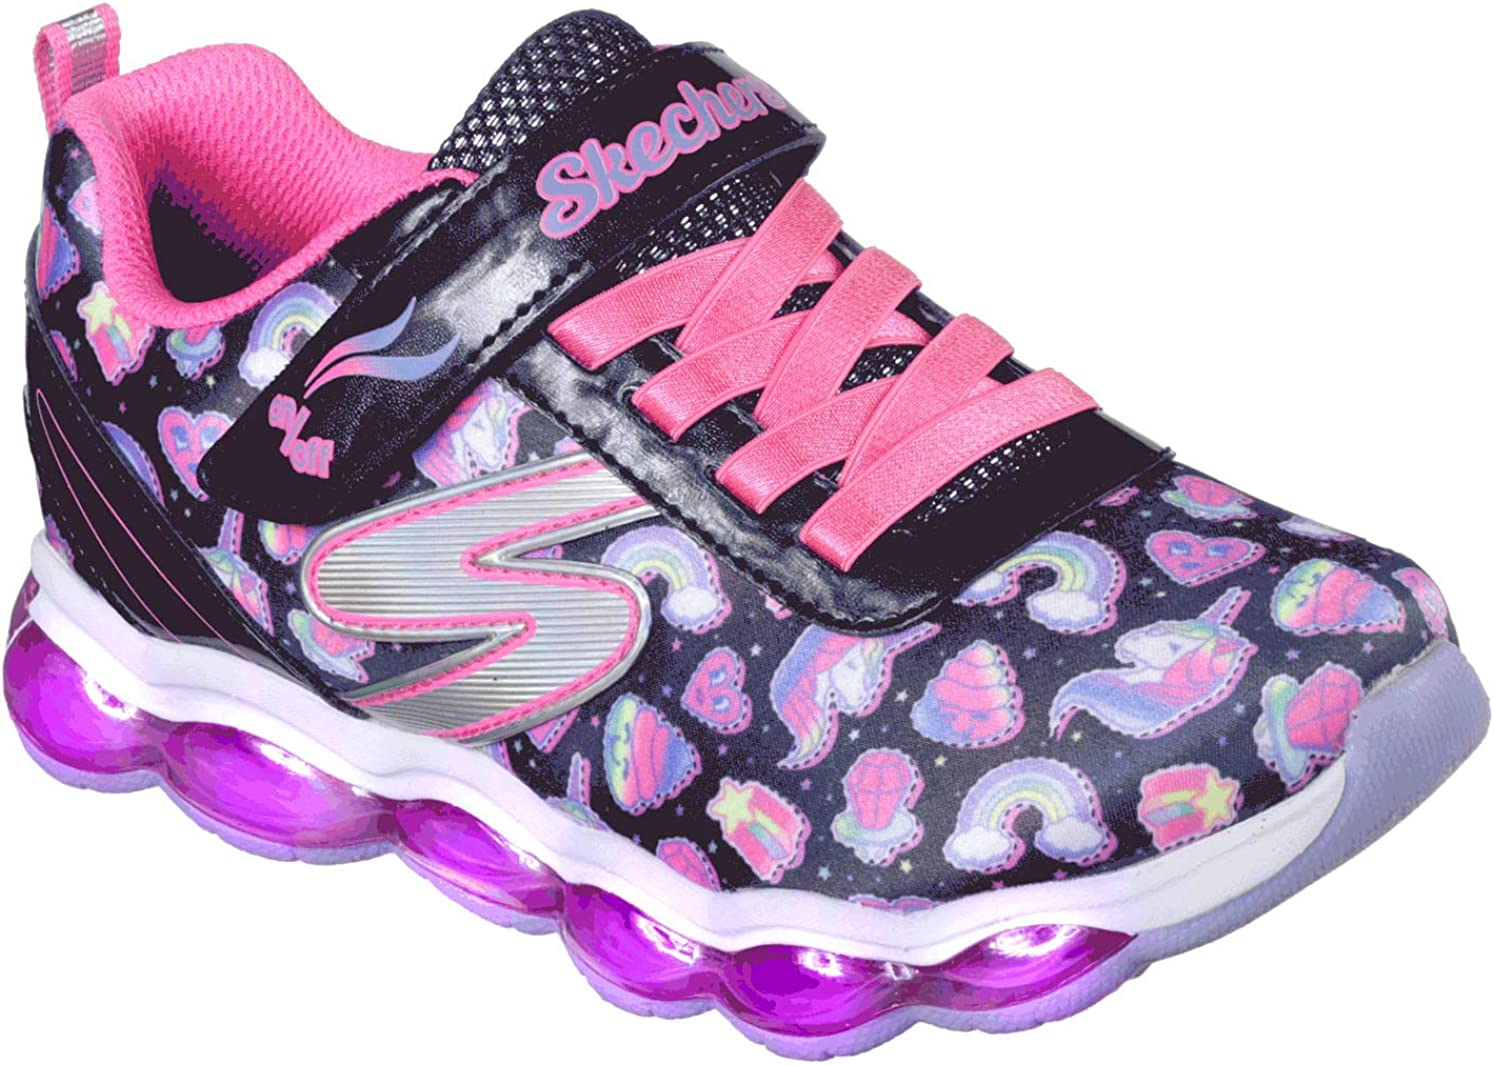 Skechers Kids' Glimmer Lights Sparkle Dreams Sneaker: Amazon IcuOB